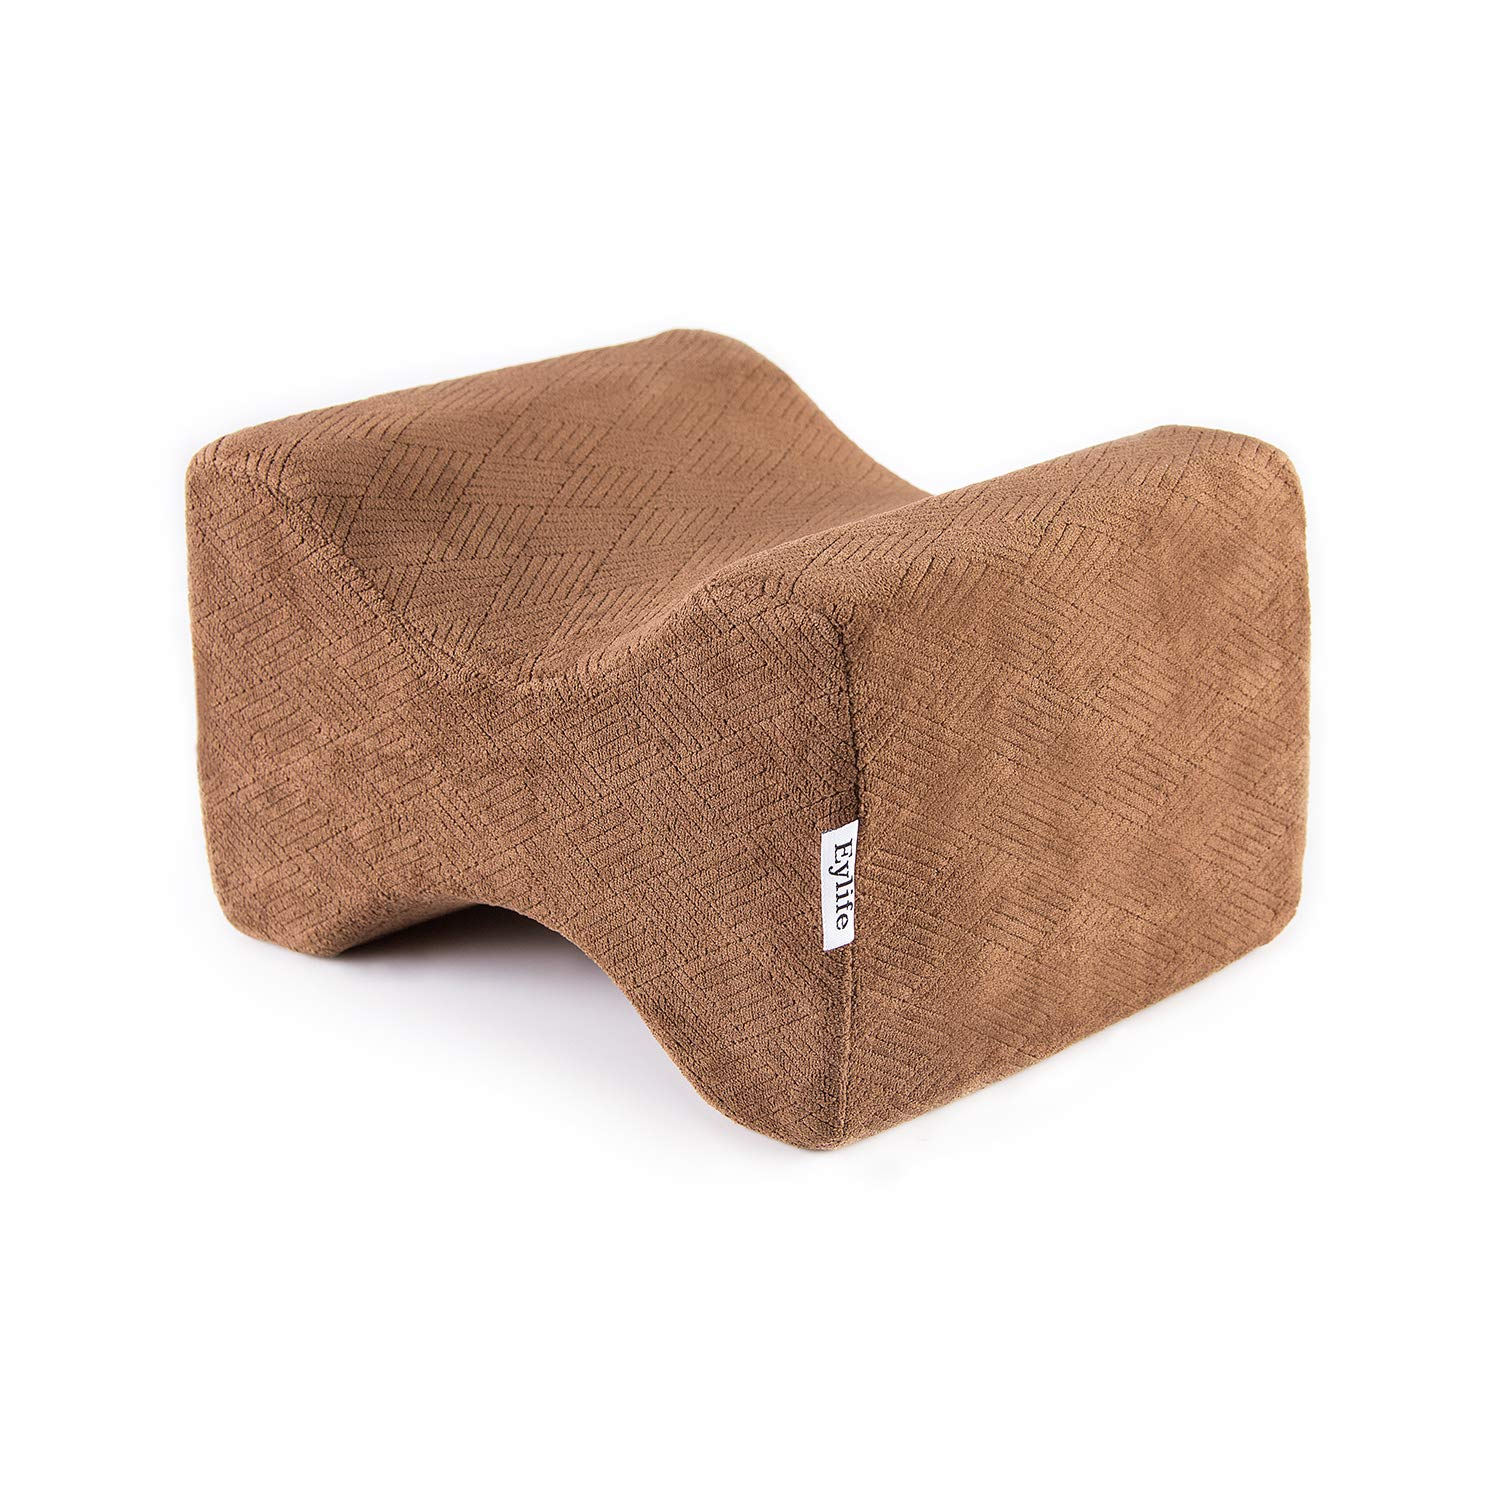 Eylife Orthopedic Knee Pillow for Sciatica Nerve Relief, Back, Hip, Leg, and Joint Pain, Leg Support, Spine Alignment, Pregnancy - Memory Foam Wedge Contour with Washable Cover - Brown